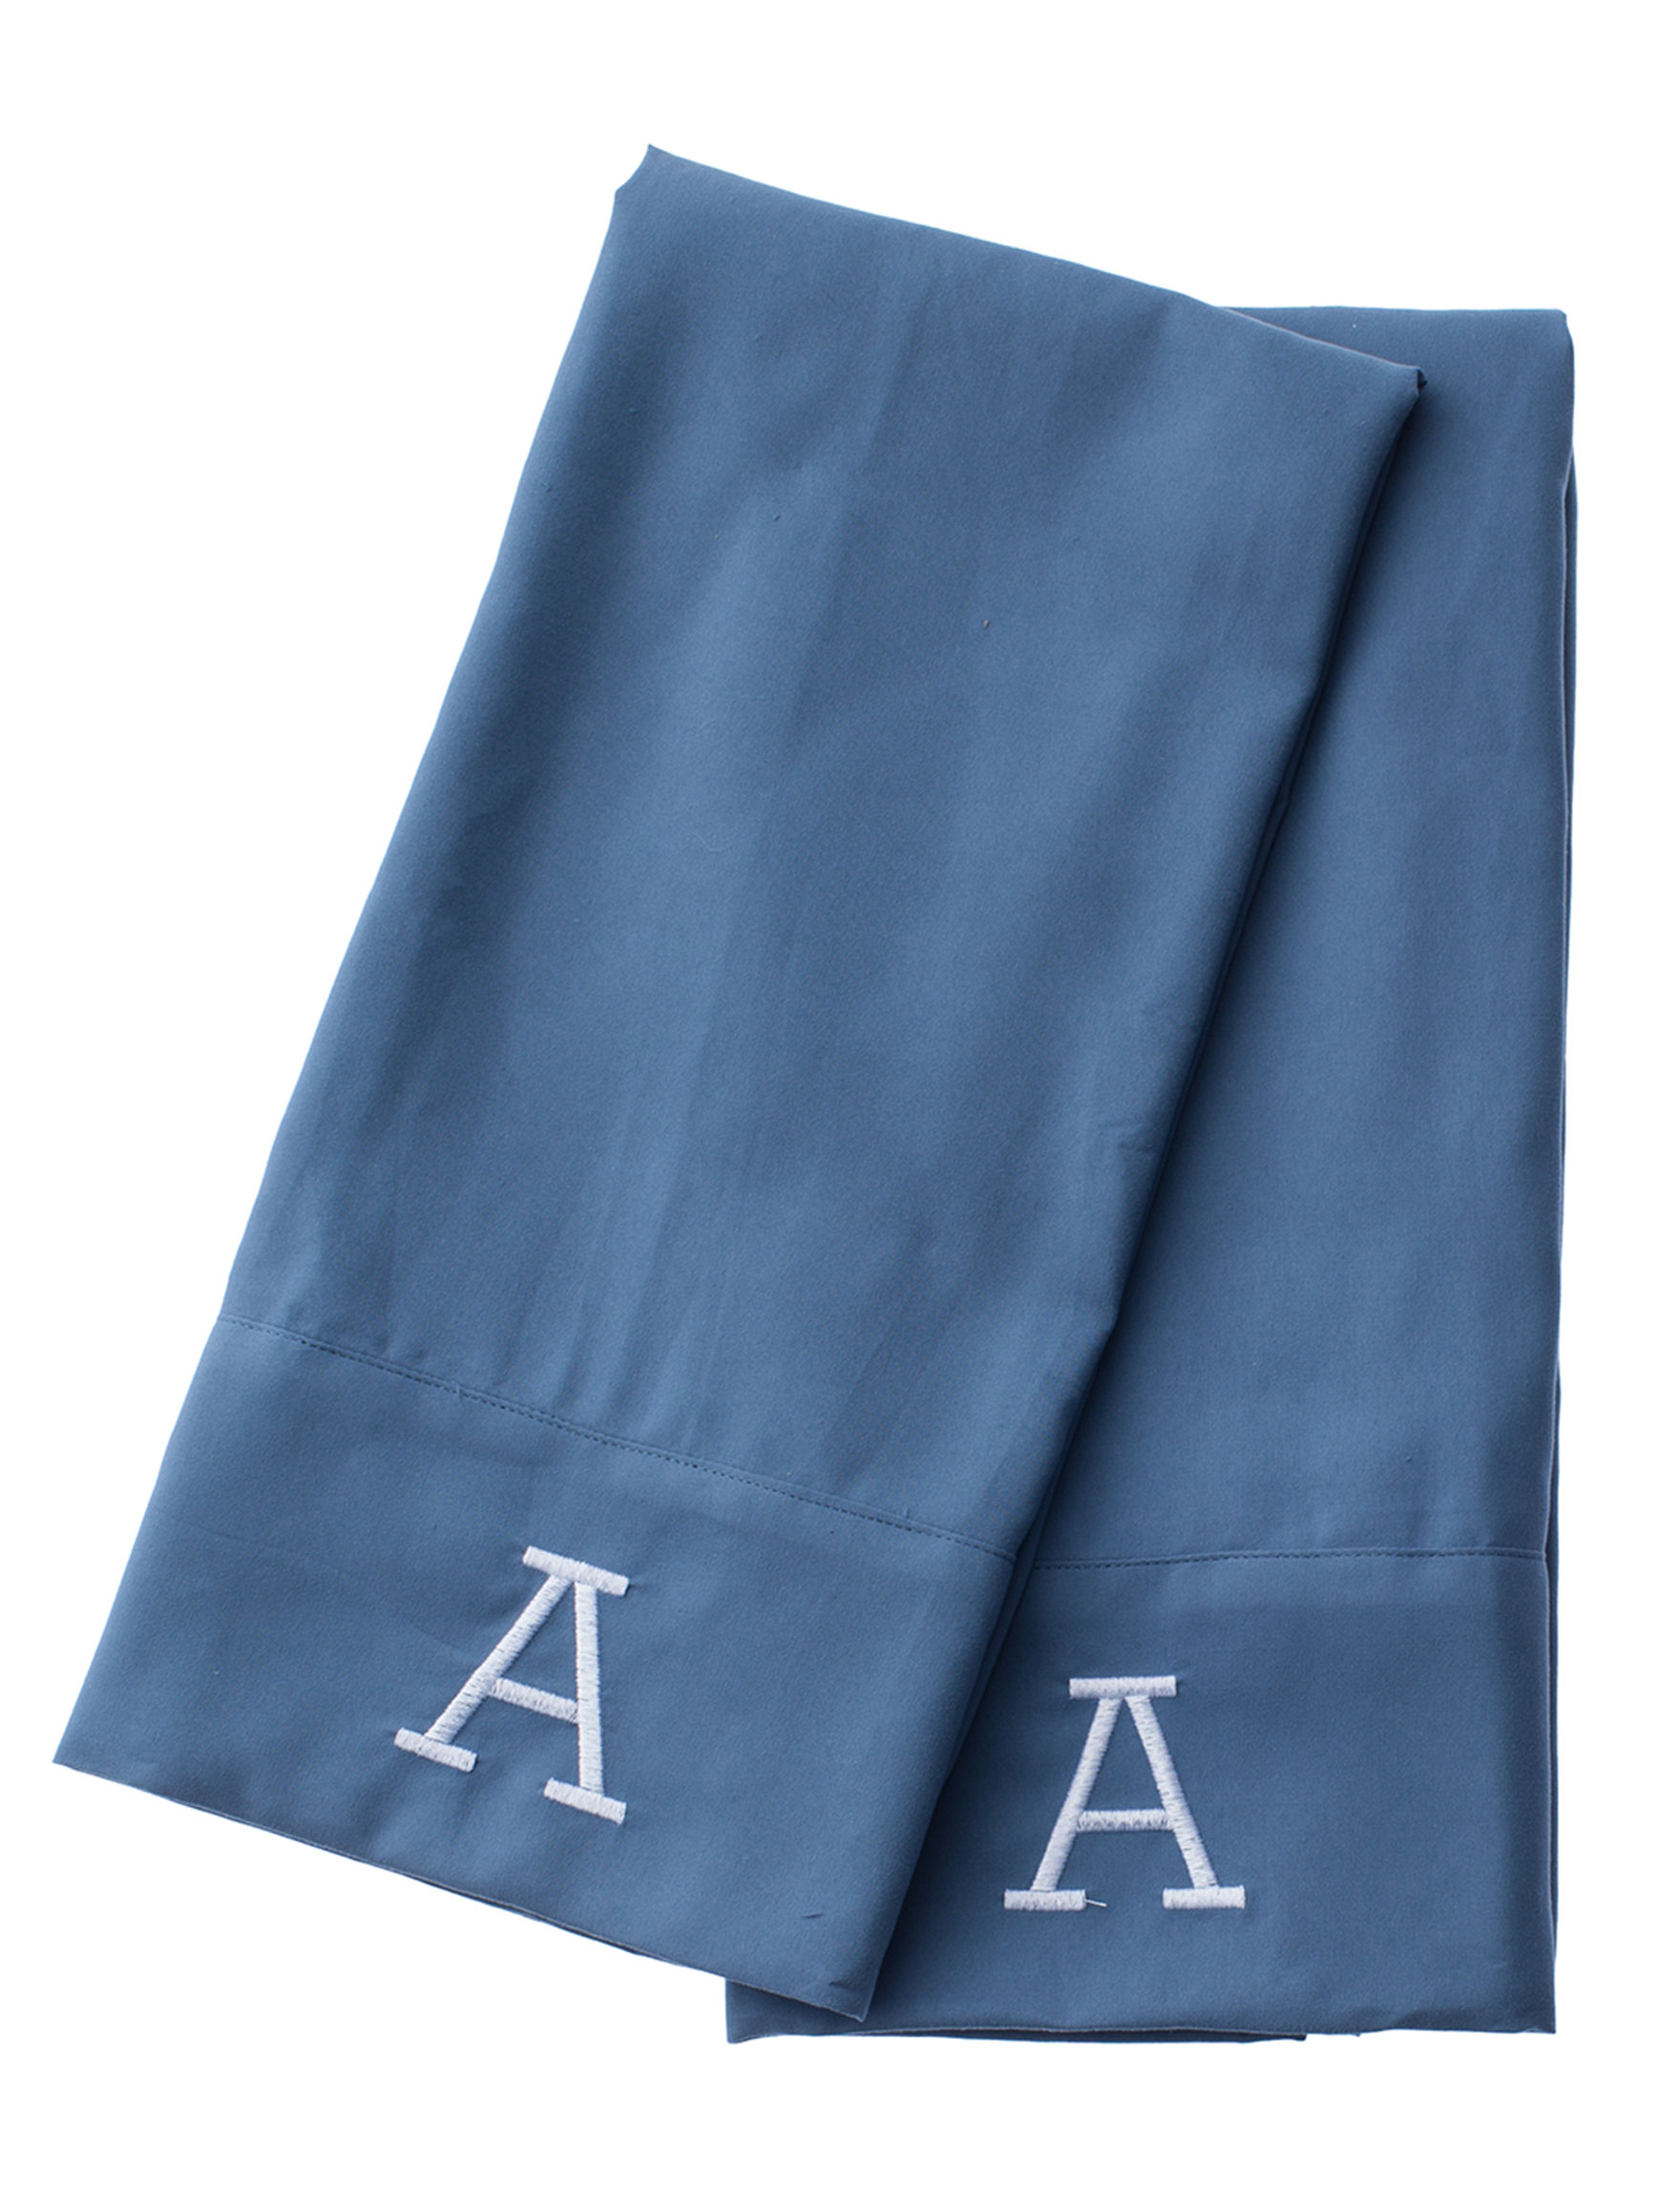 Great Hotels Collection Blue Monogram Sheets & Pillowcases